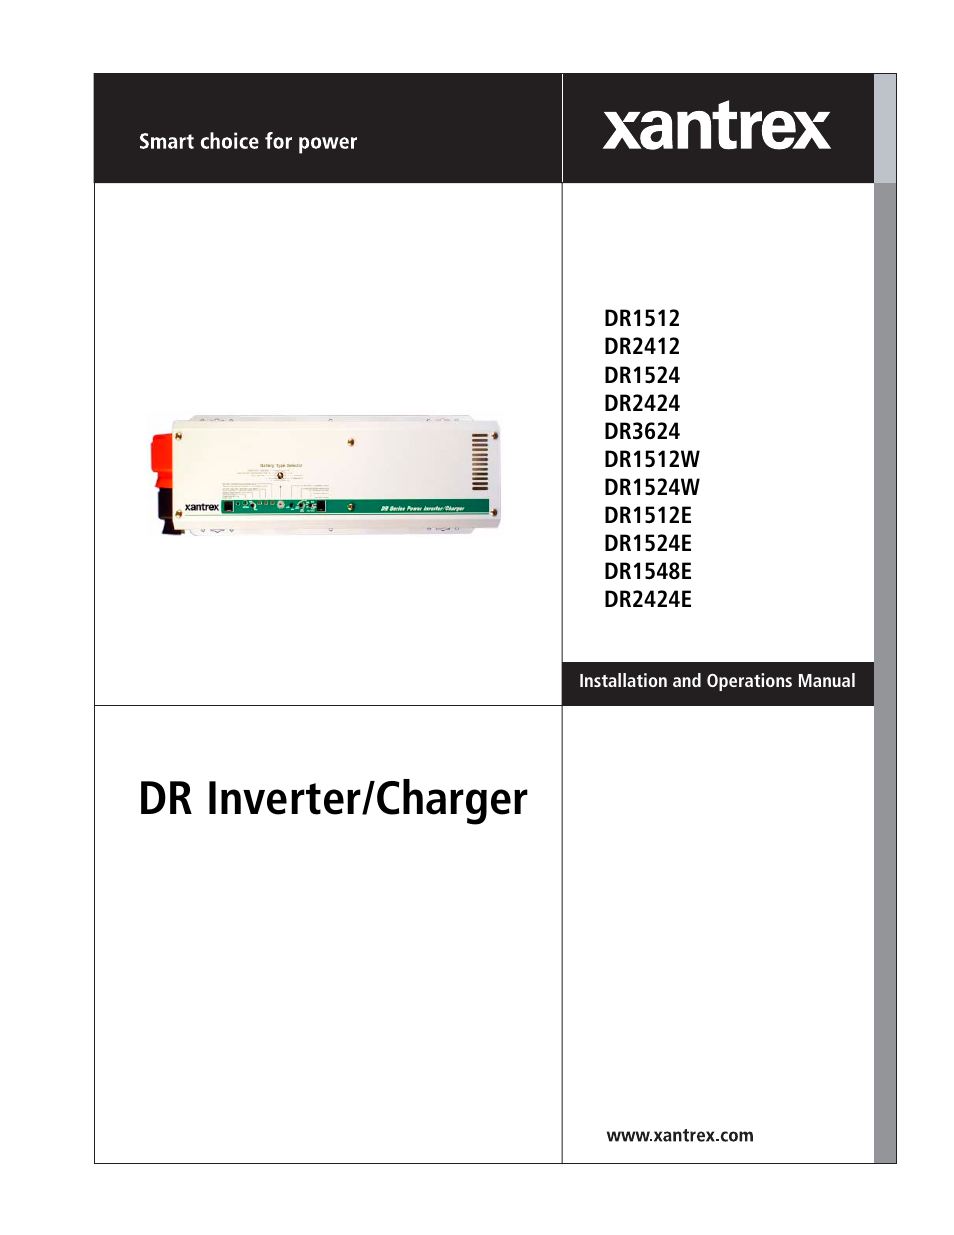 xantrex technology dr1524w user manual 122 pages also for rh manualsdir com Xantrex Inverter Charger Xantrex Powerpack